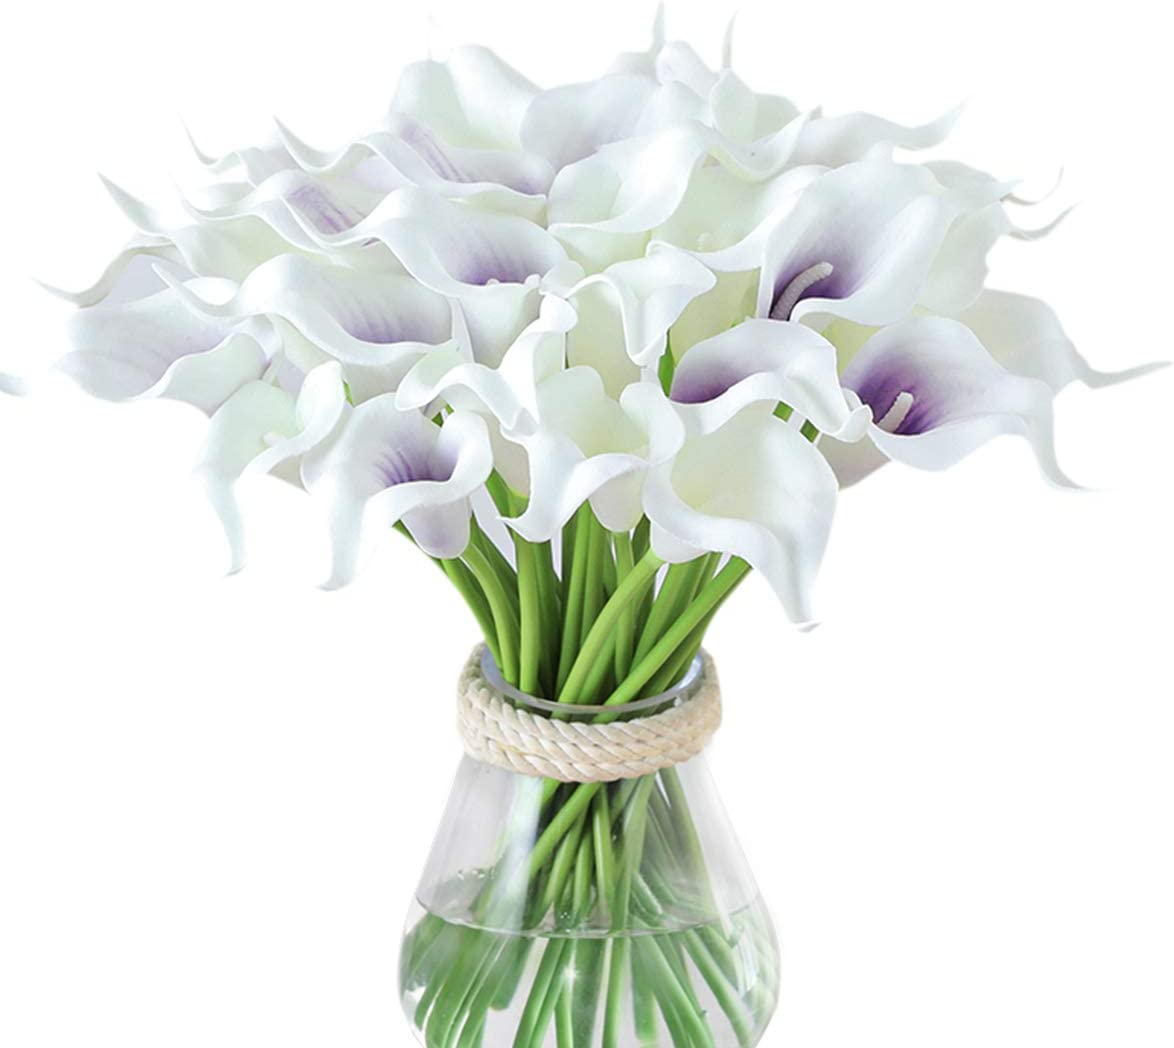 Tifuly 24pcs Calla Lily Bridal Wedding Bouquet Latex Real Touch Artificial Flowers Arrangement for Home Office Party Decor (Purple and White)